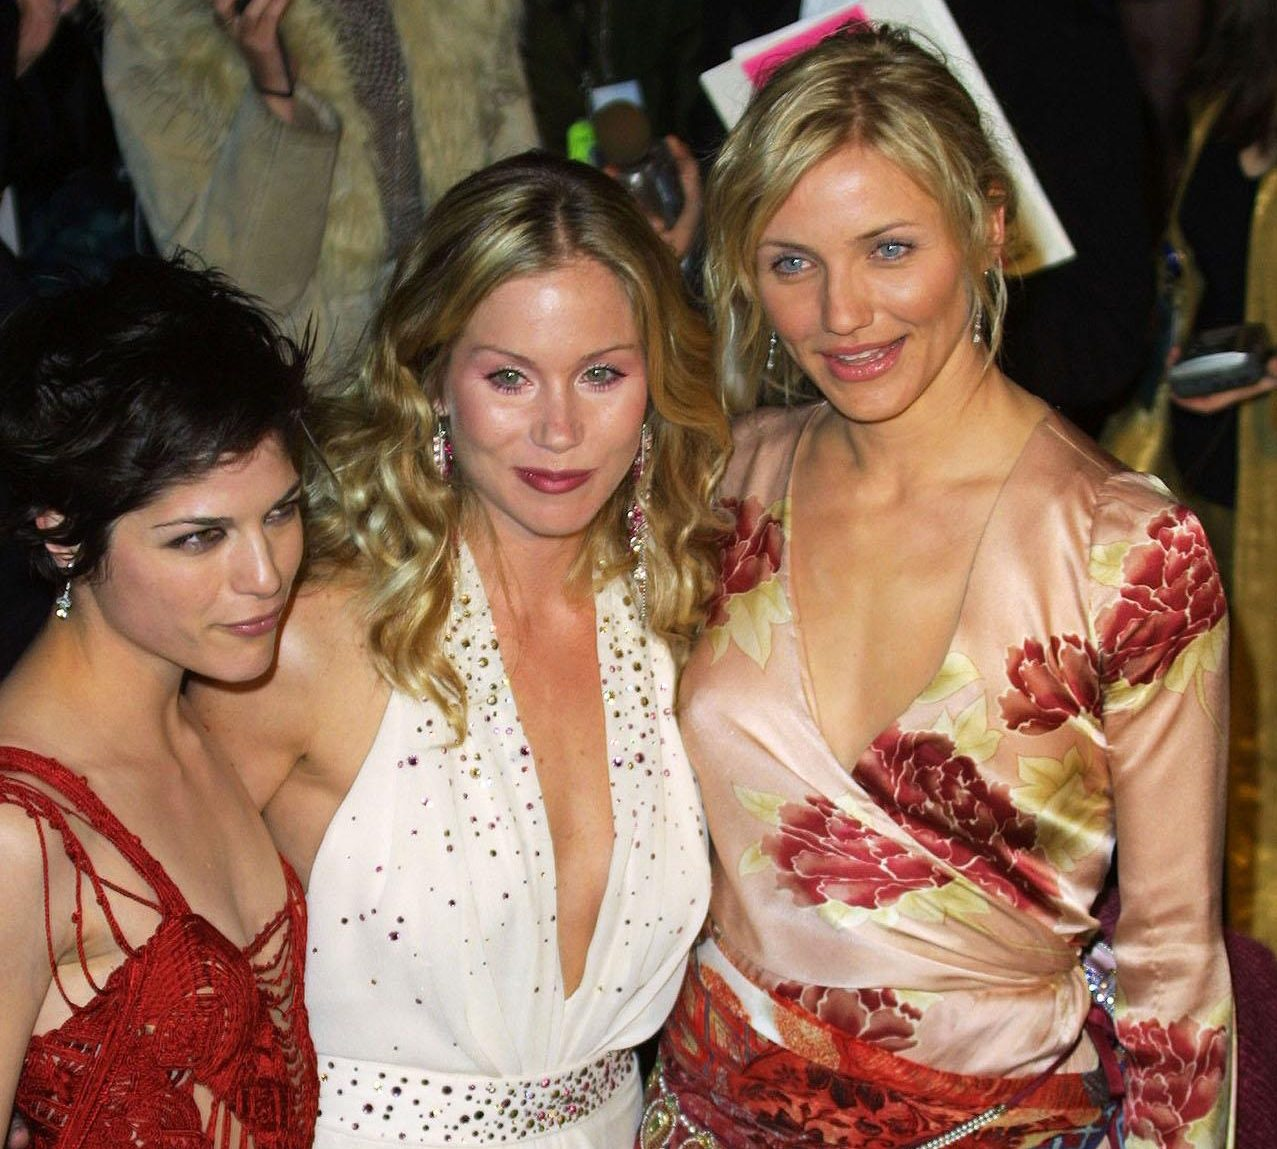 Selma Blair insists pal Cameron Diaz is NOT retiring from acting